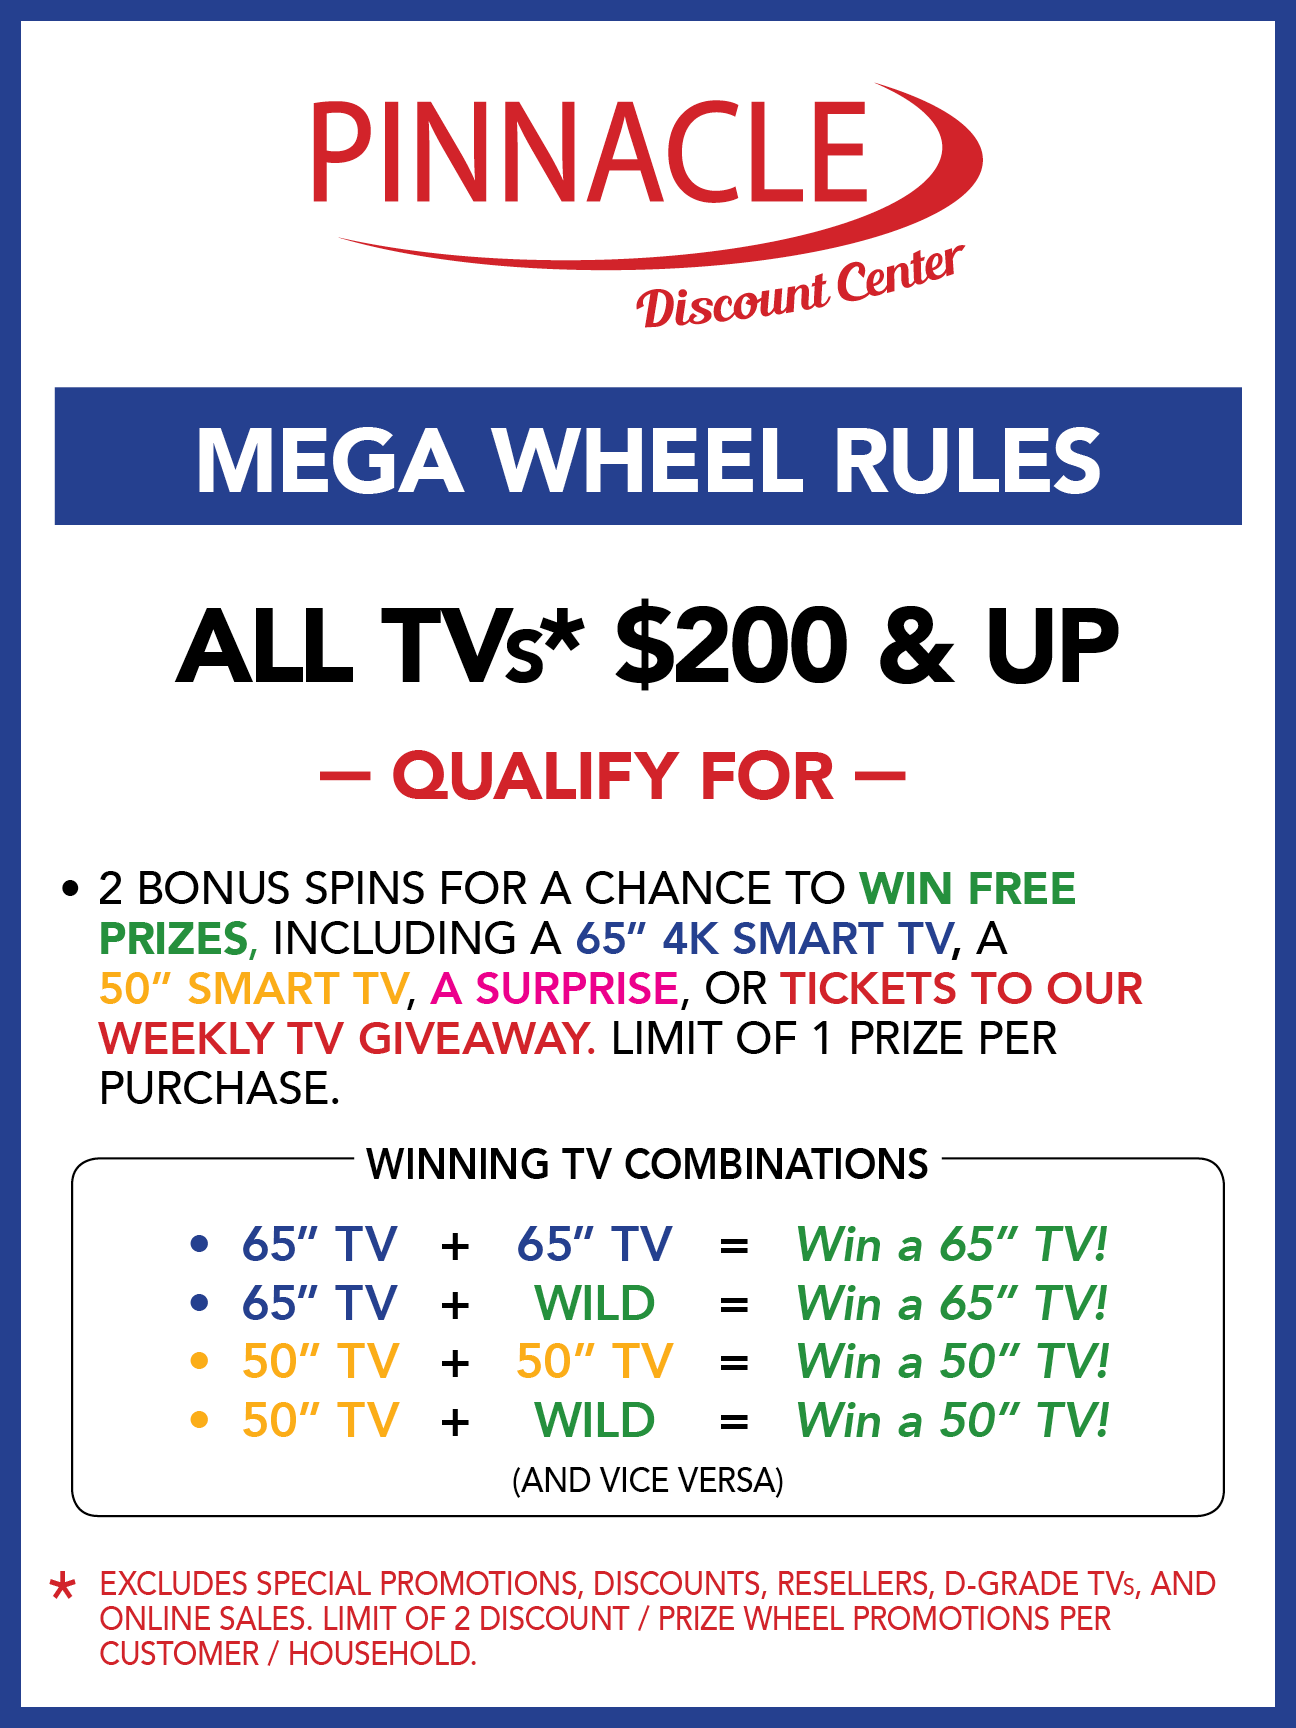 18x24-Wheel-Rules_NO-DISCOUNT-generic.png